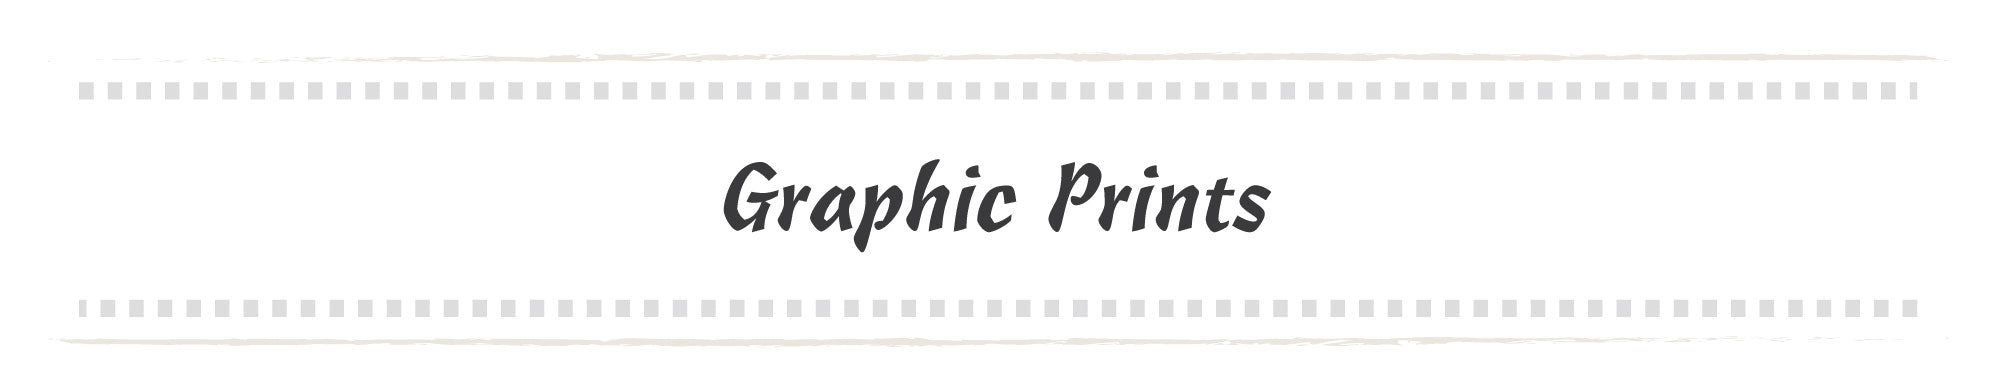 Graphic Prints Collection